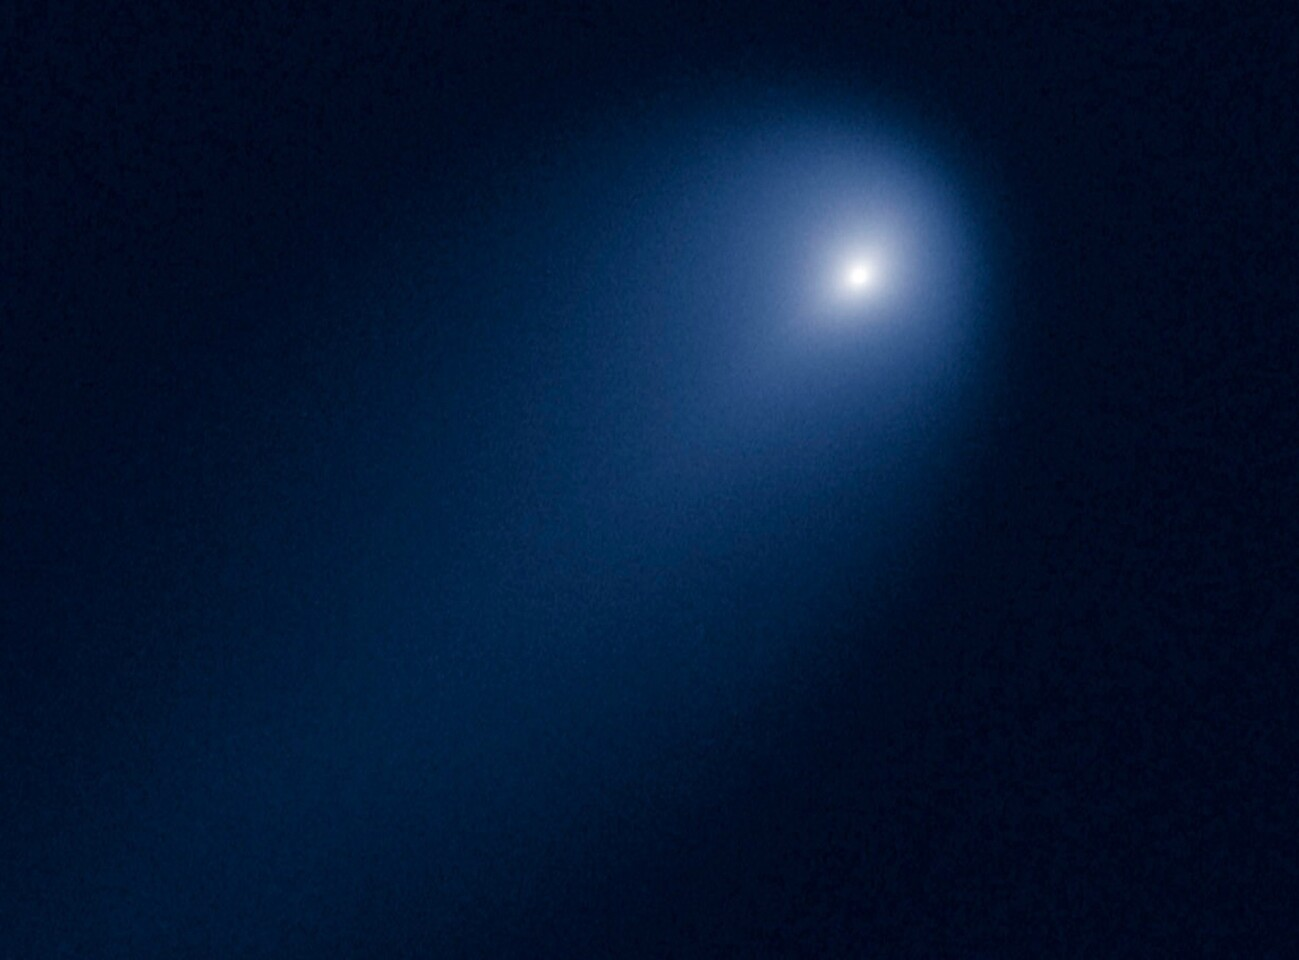 In this image taken by the Hubble Space Telescope, the comet ISON is slightly closer than Jupiter's orbit at a distance of 386 million miles from the sun as it approaches the inner solar system. ISON is expected to make its closest approach to the sun on Nov. 28.